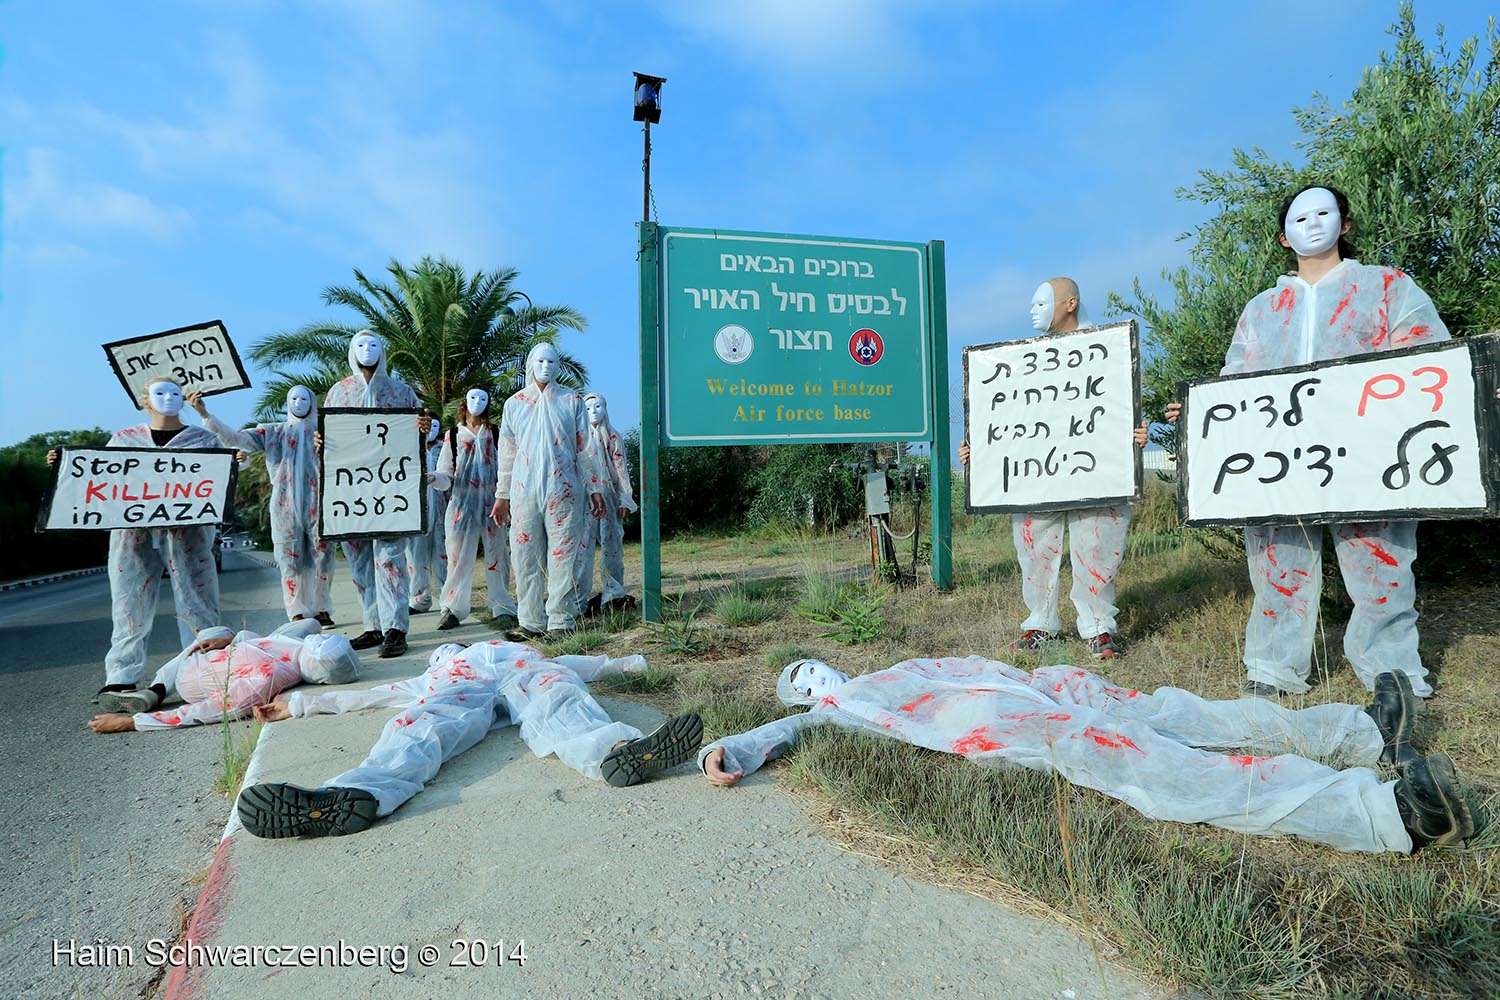 Direct action at Air Force Base against the Massacre in Gaza